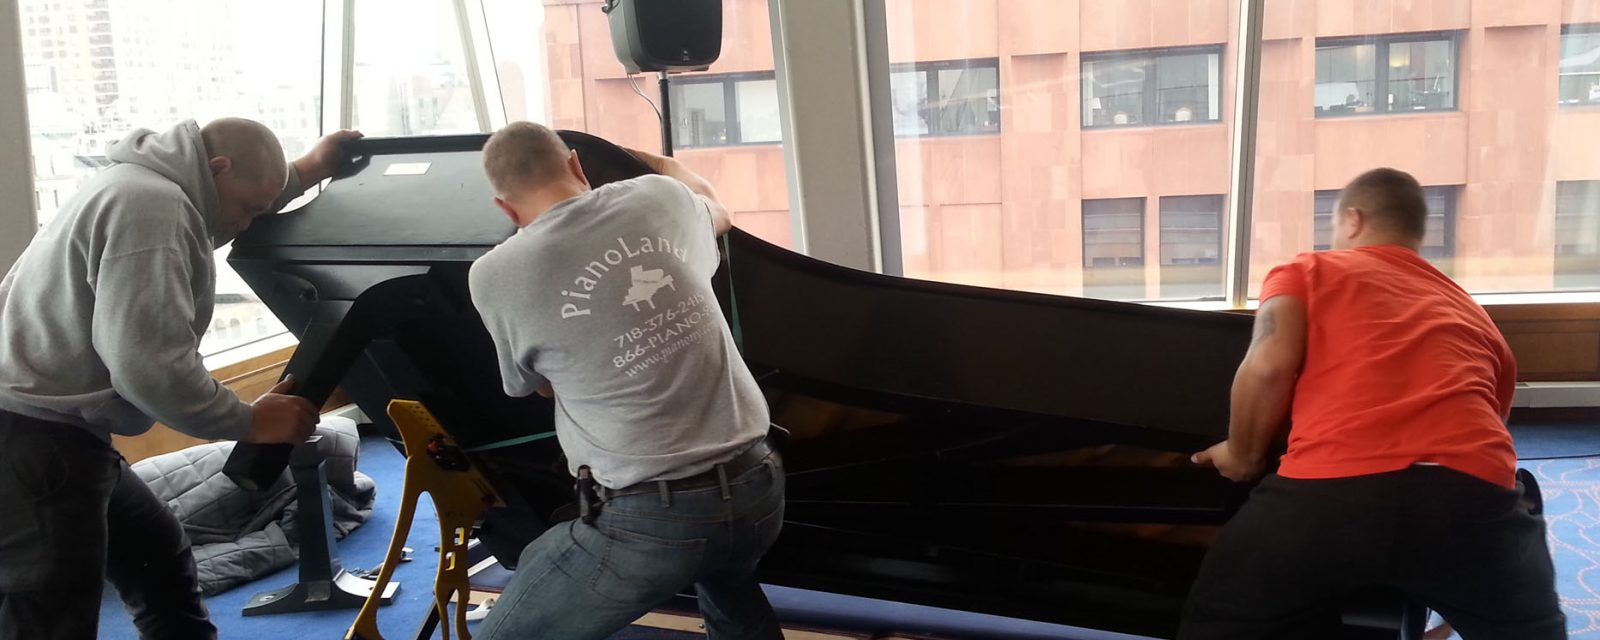 piano-movers-nyc